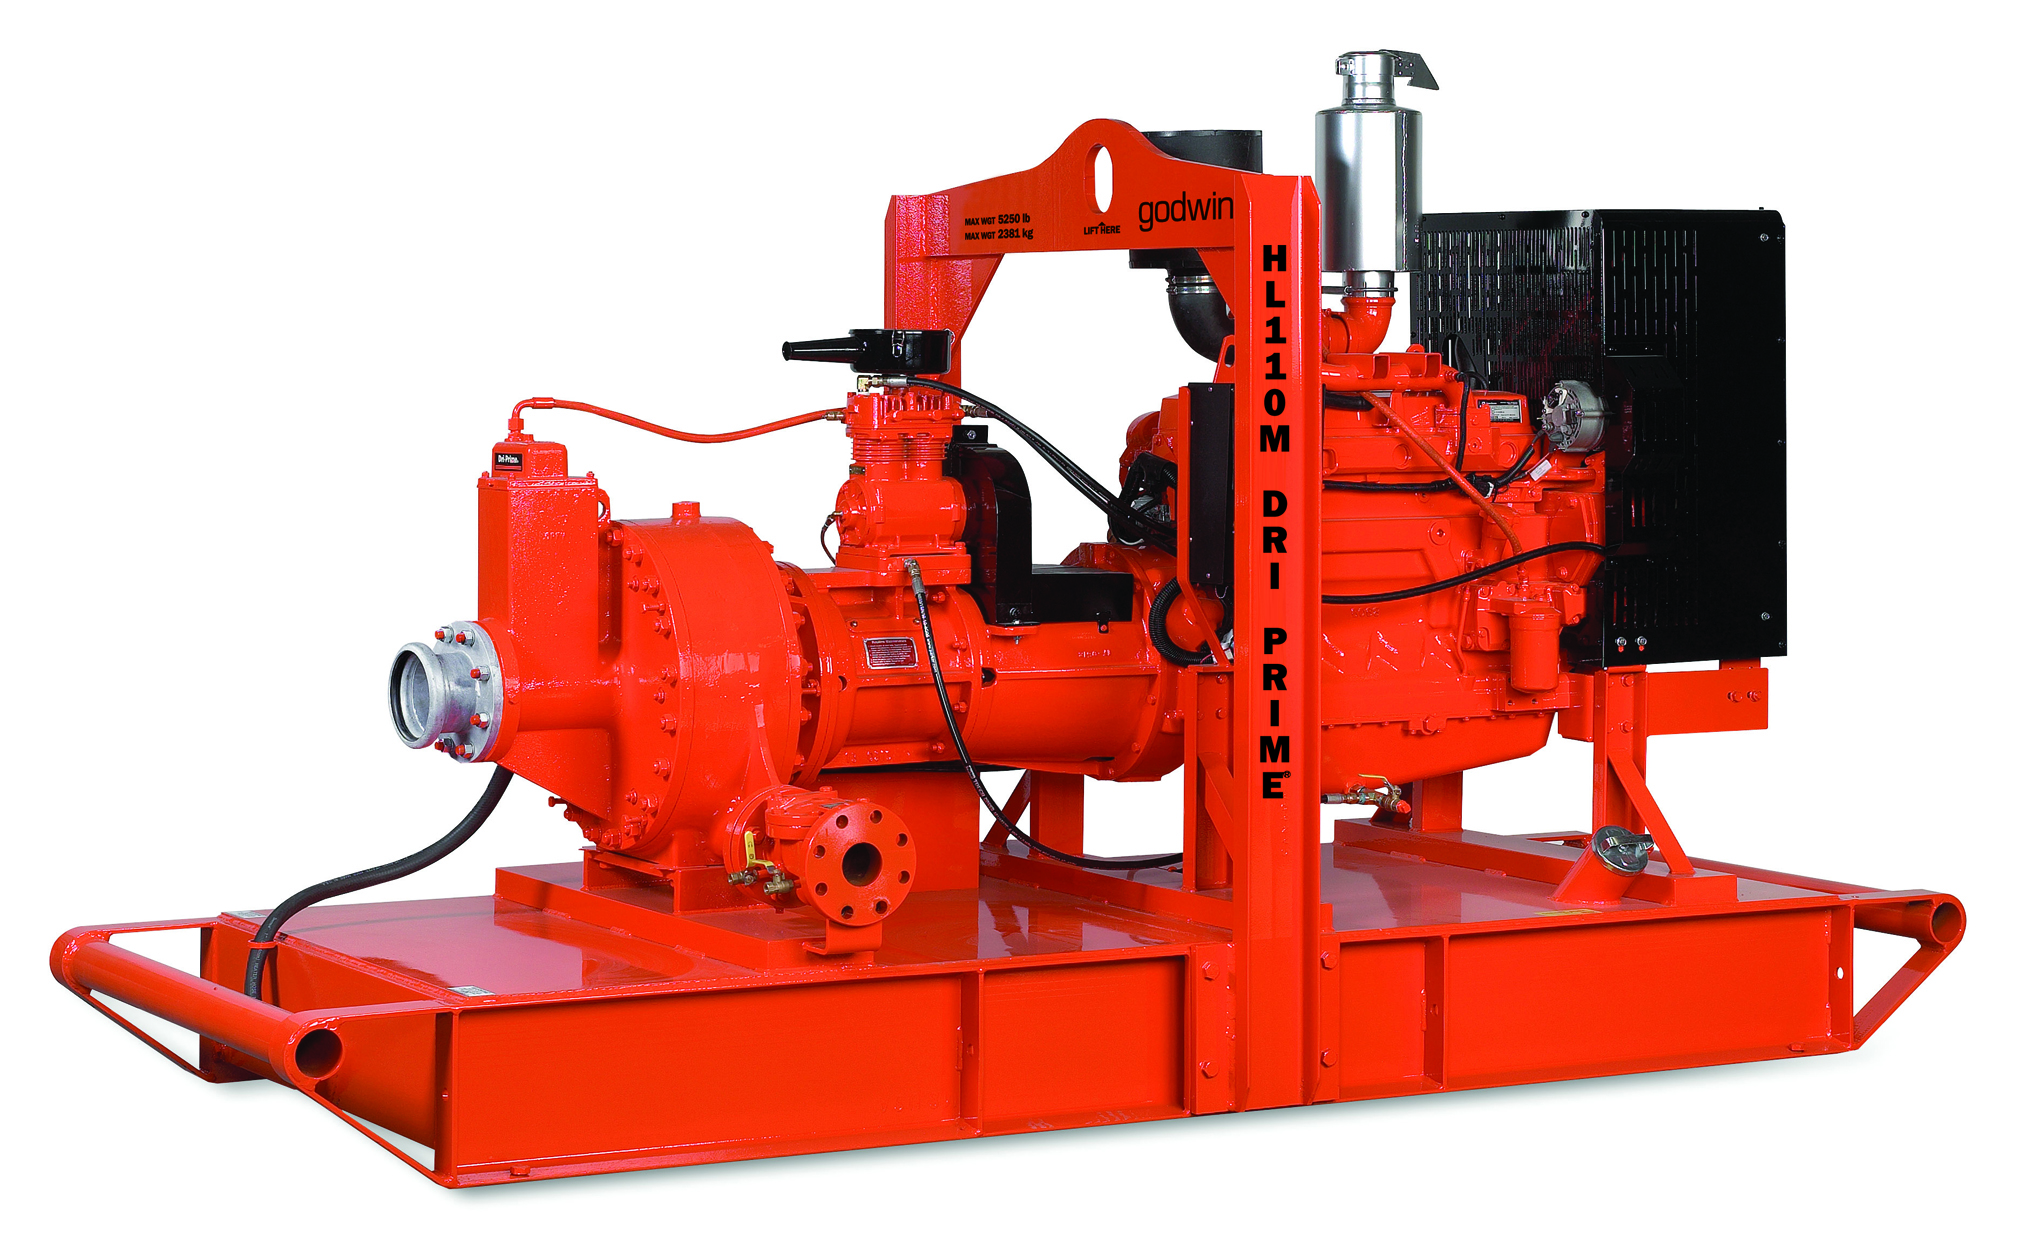 Xylem To Exhibit Godwin And Flygt Pumps At The Elko Mining